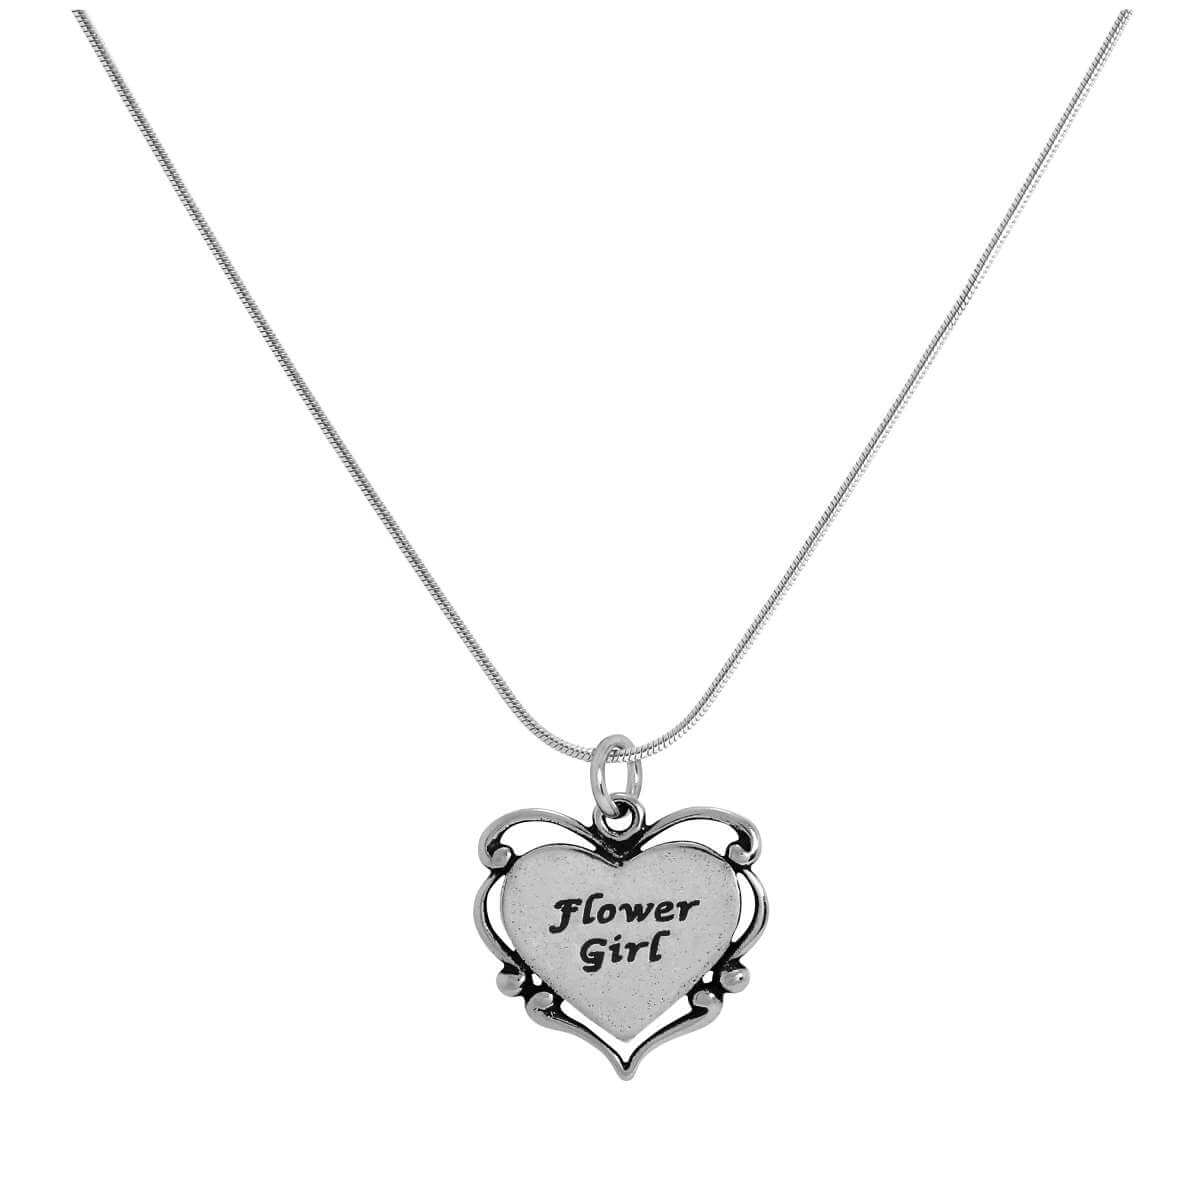 Sterling Silver Flower Girl Heart Pendant on Chain 14 - 22 Inches